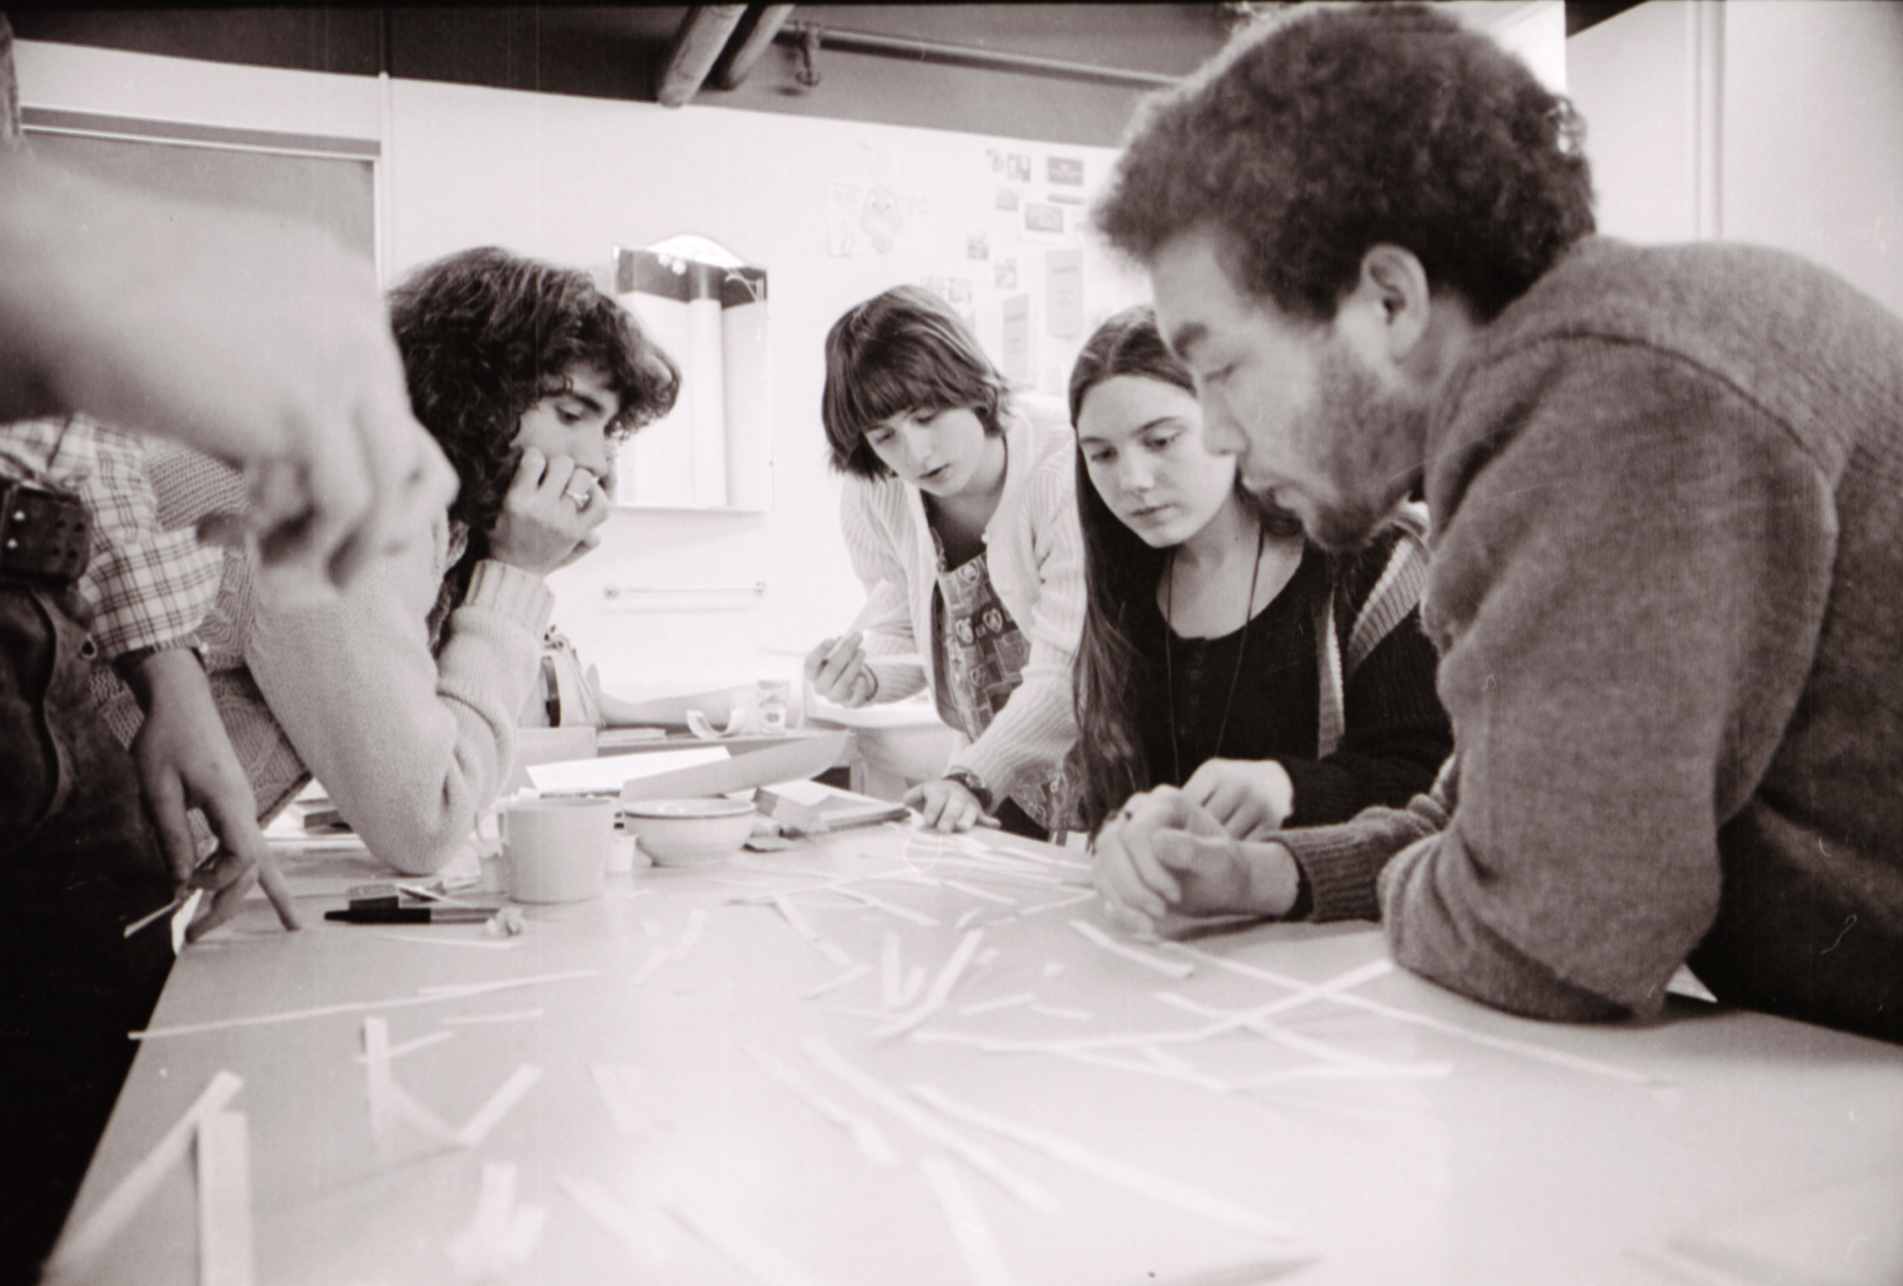 Four Cool School students gather around a table to work on a project together